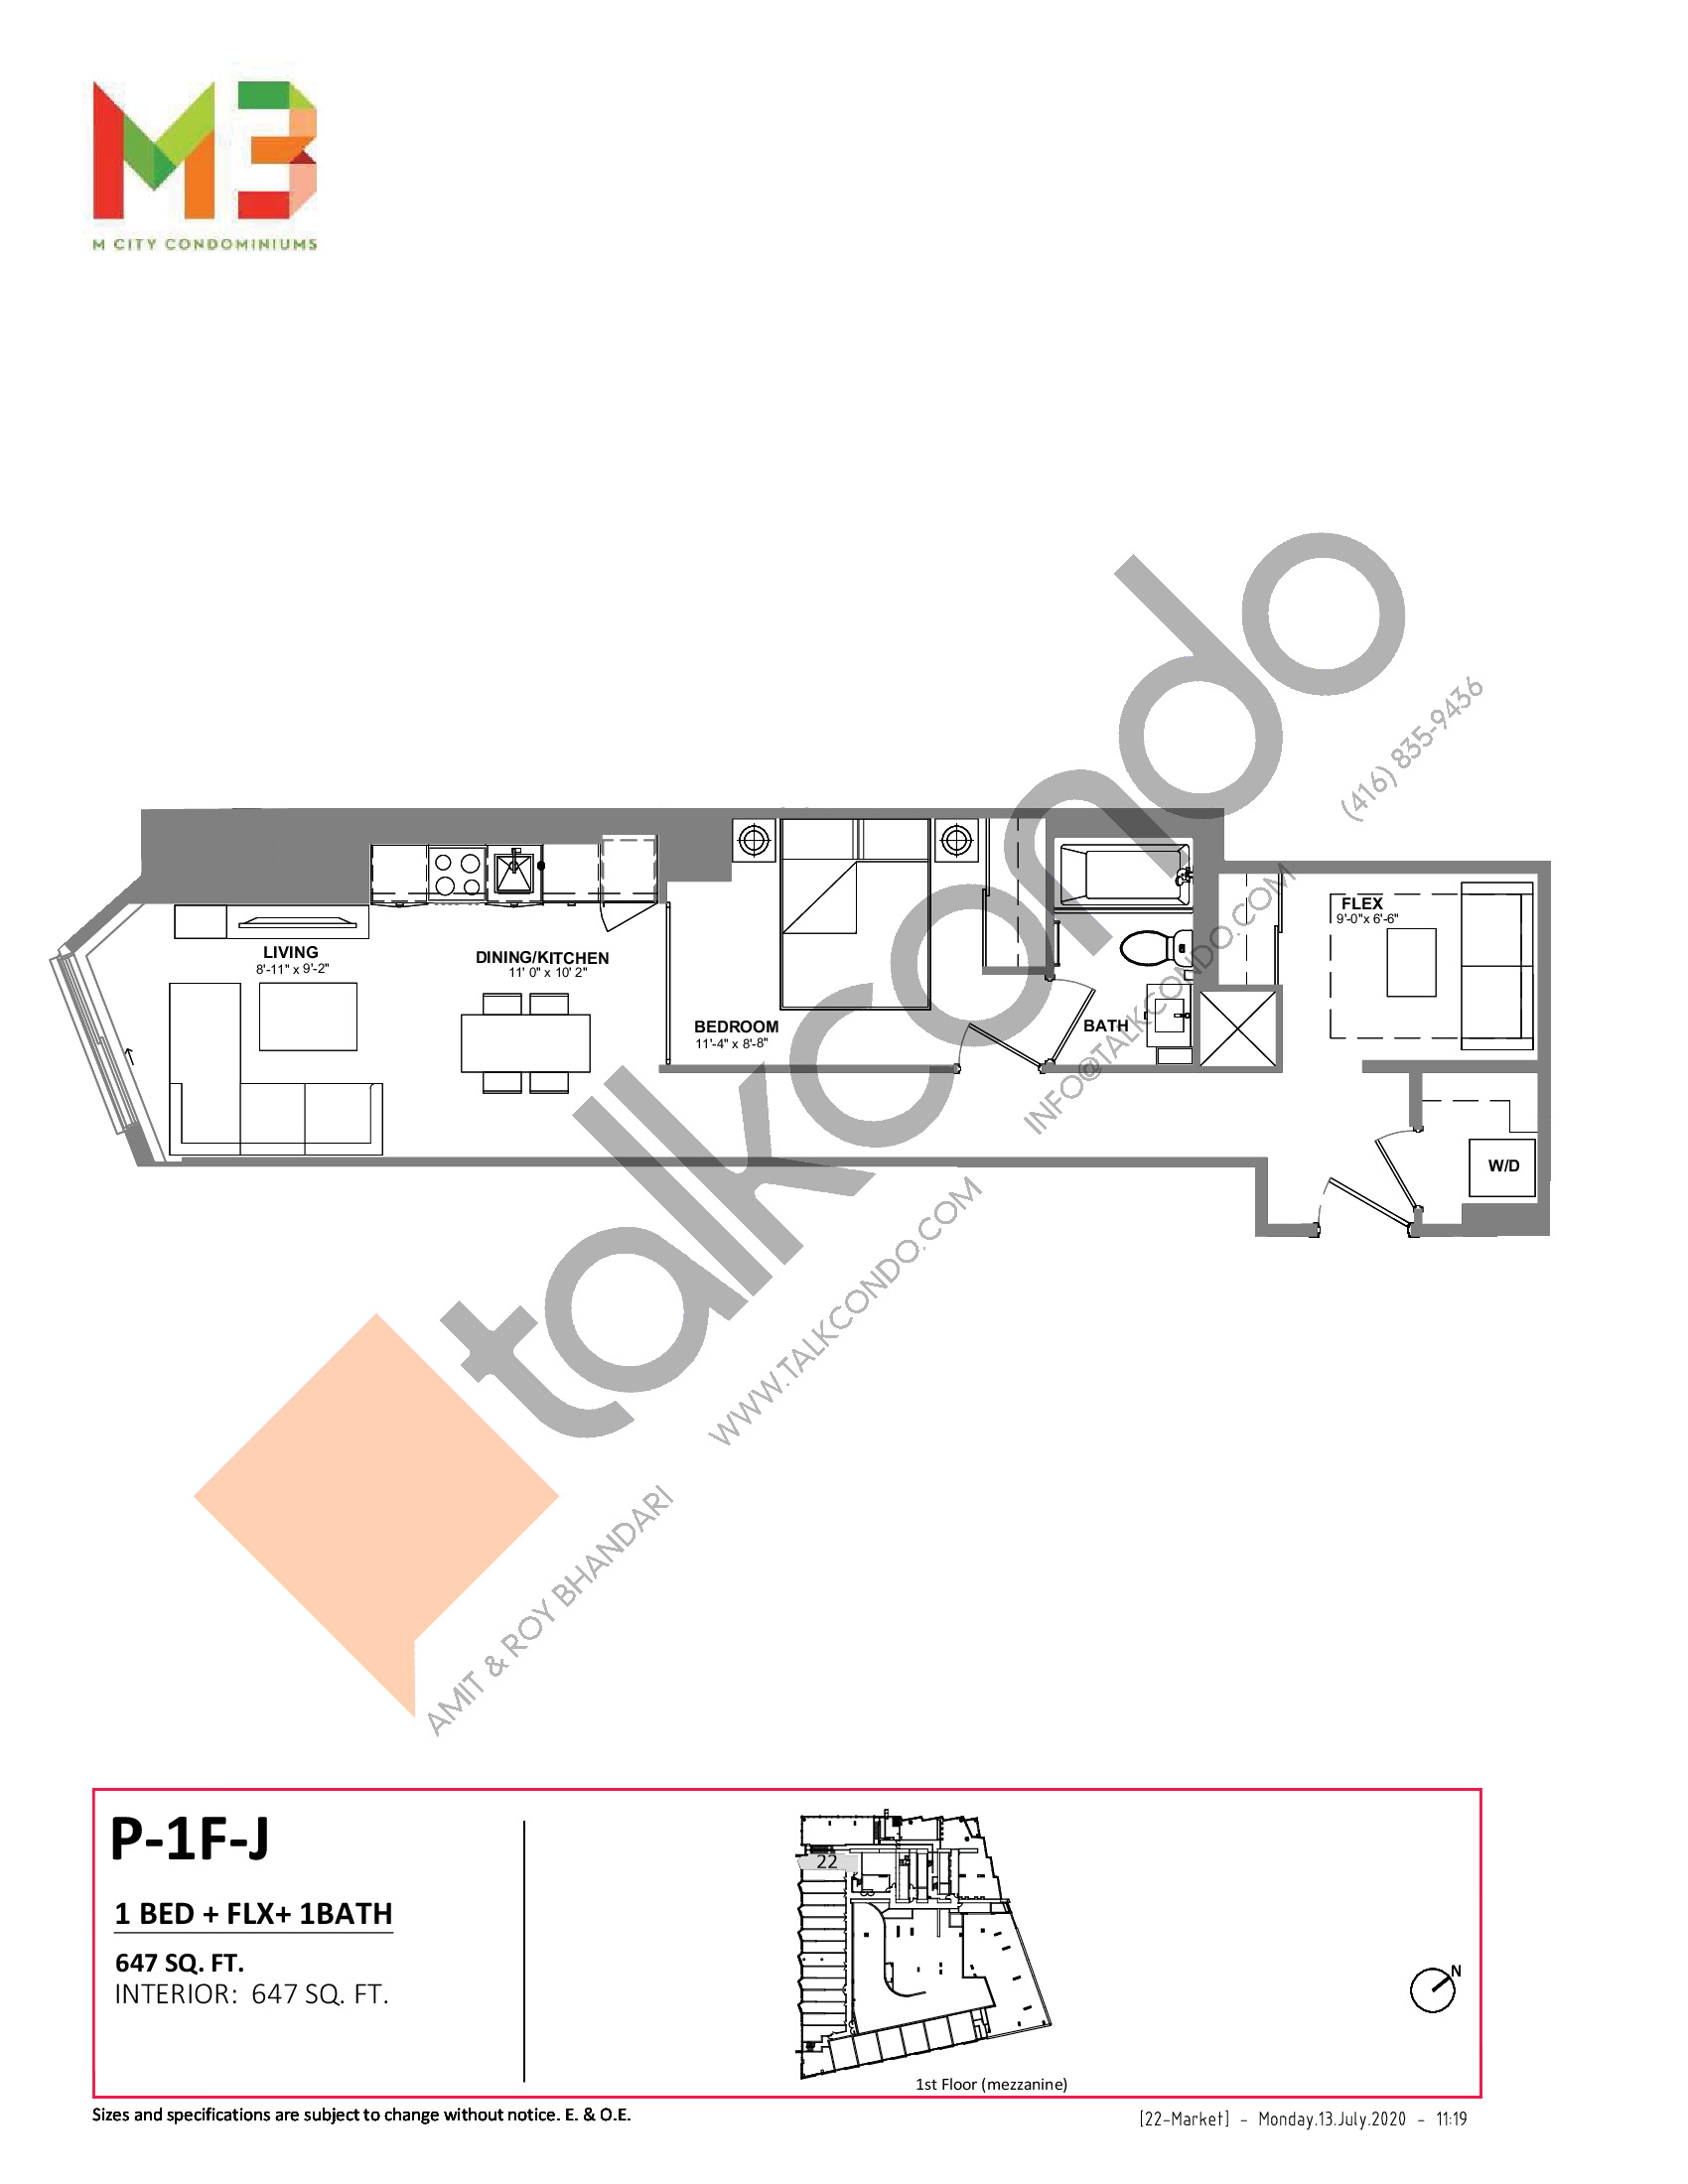 P-1F-J Floor Plan at M3 Condos - 647 sq.ft